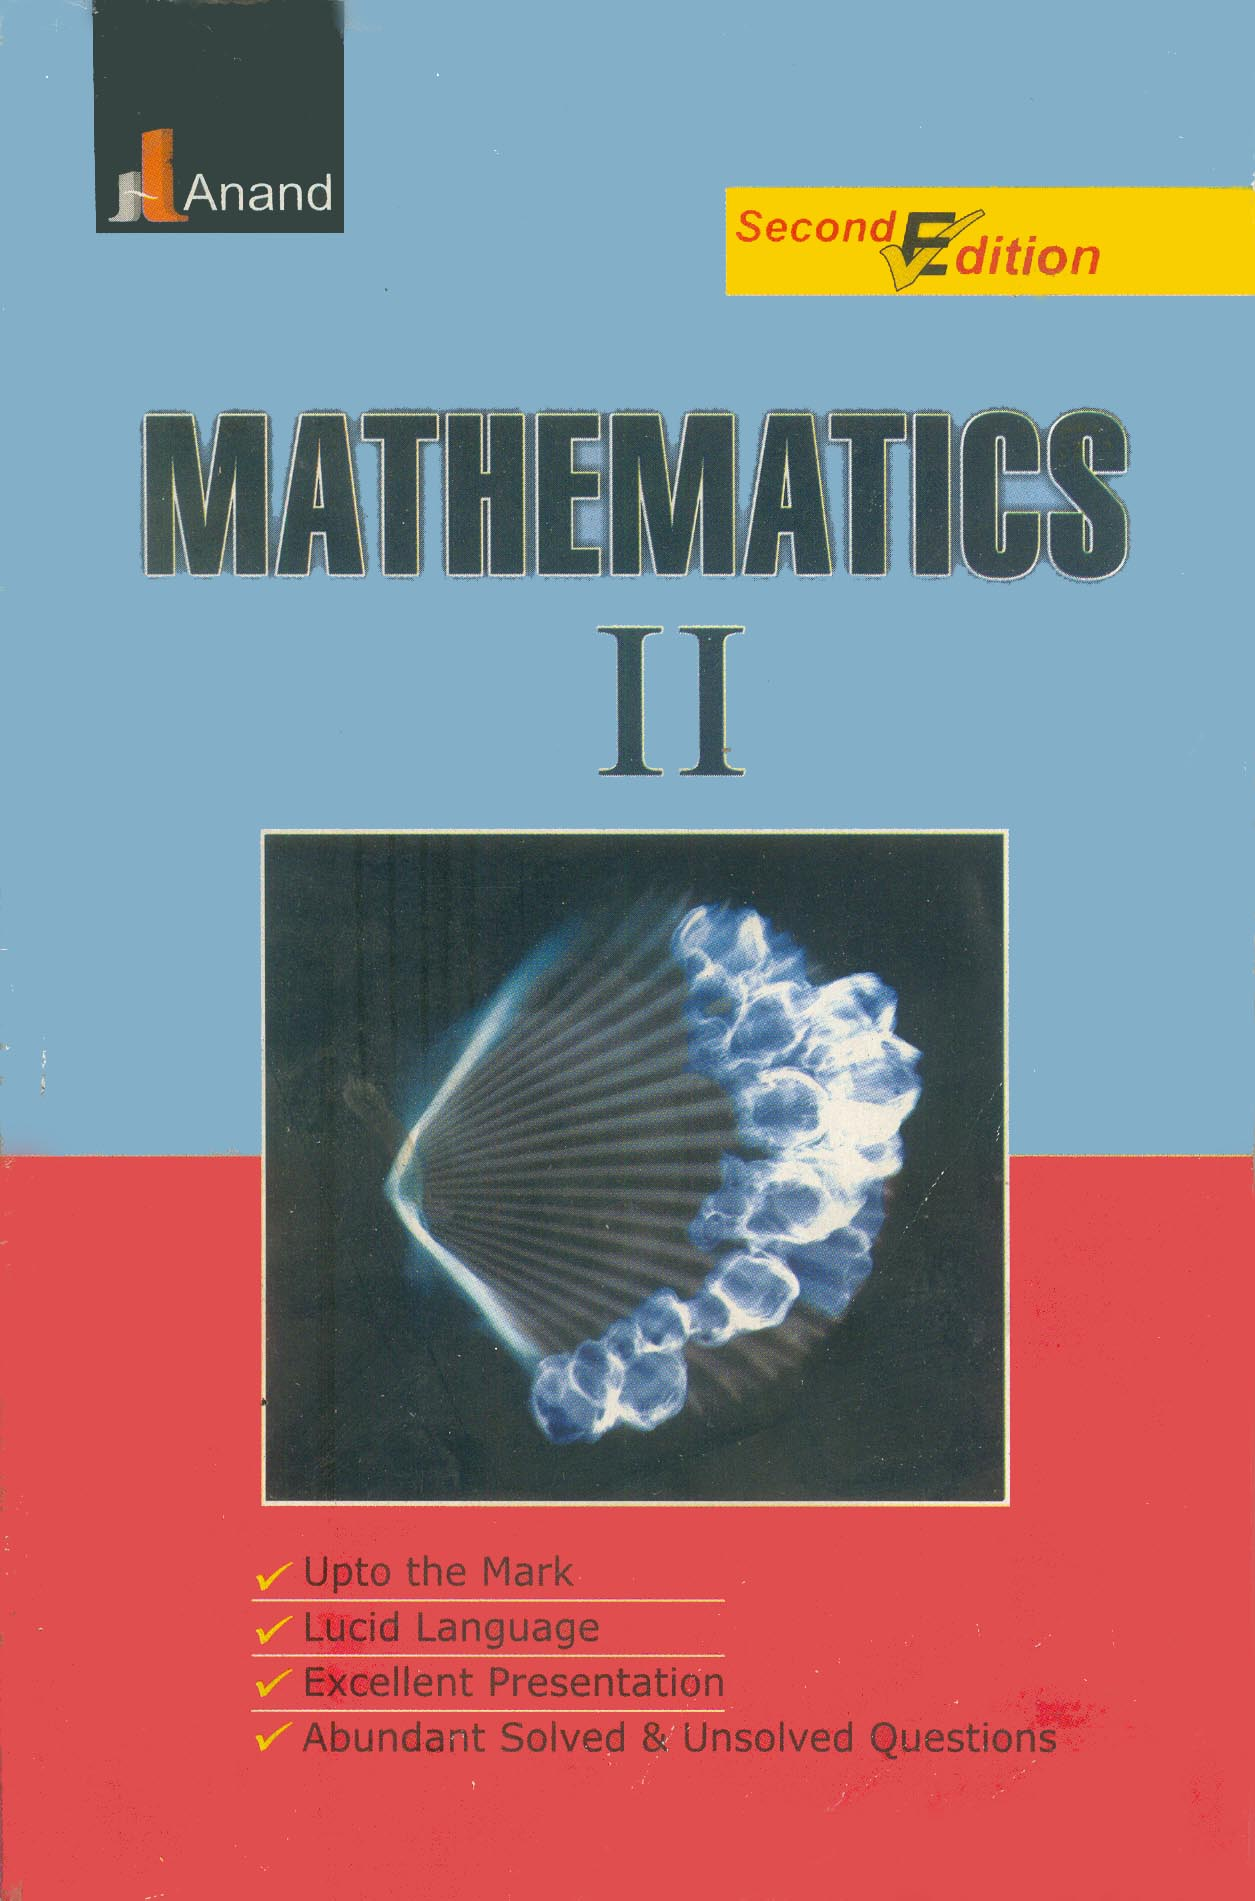 TAS-204 ENGINEERING MATHEMATICS II